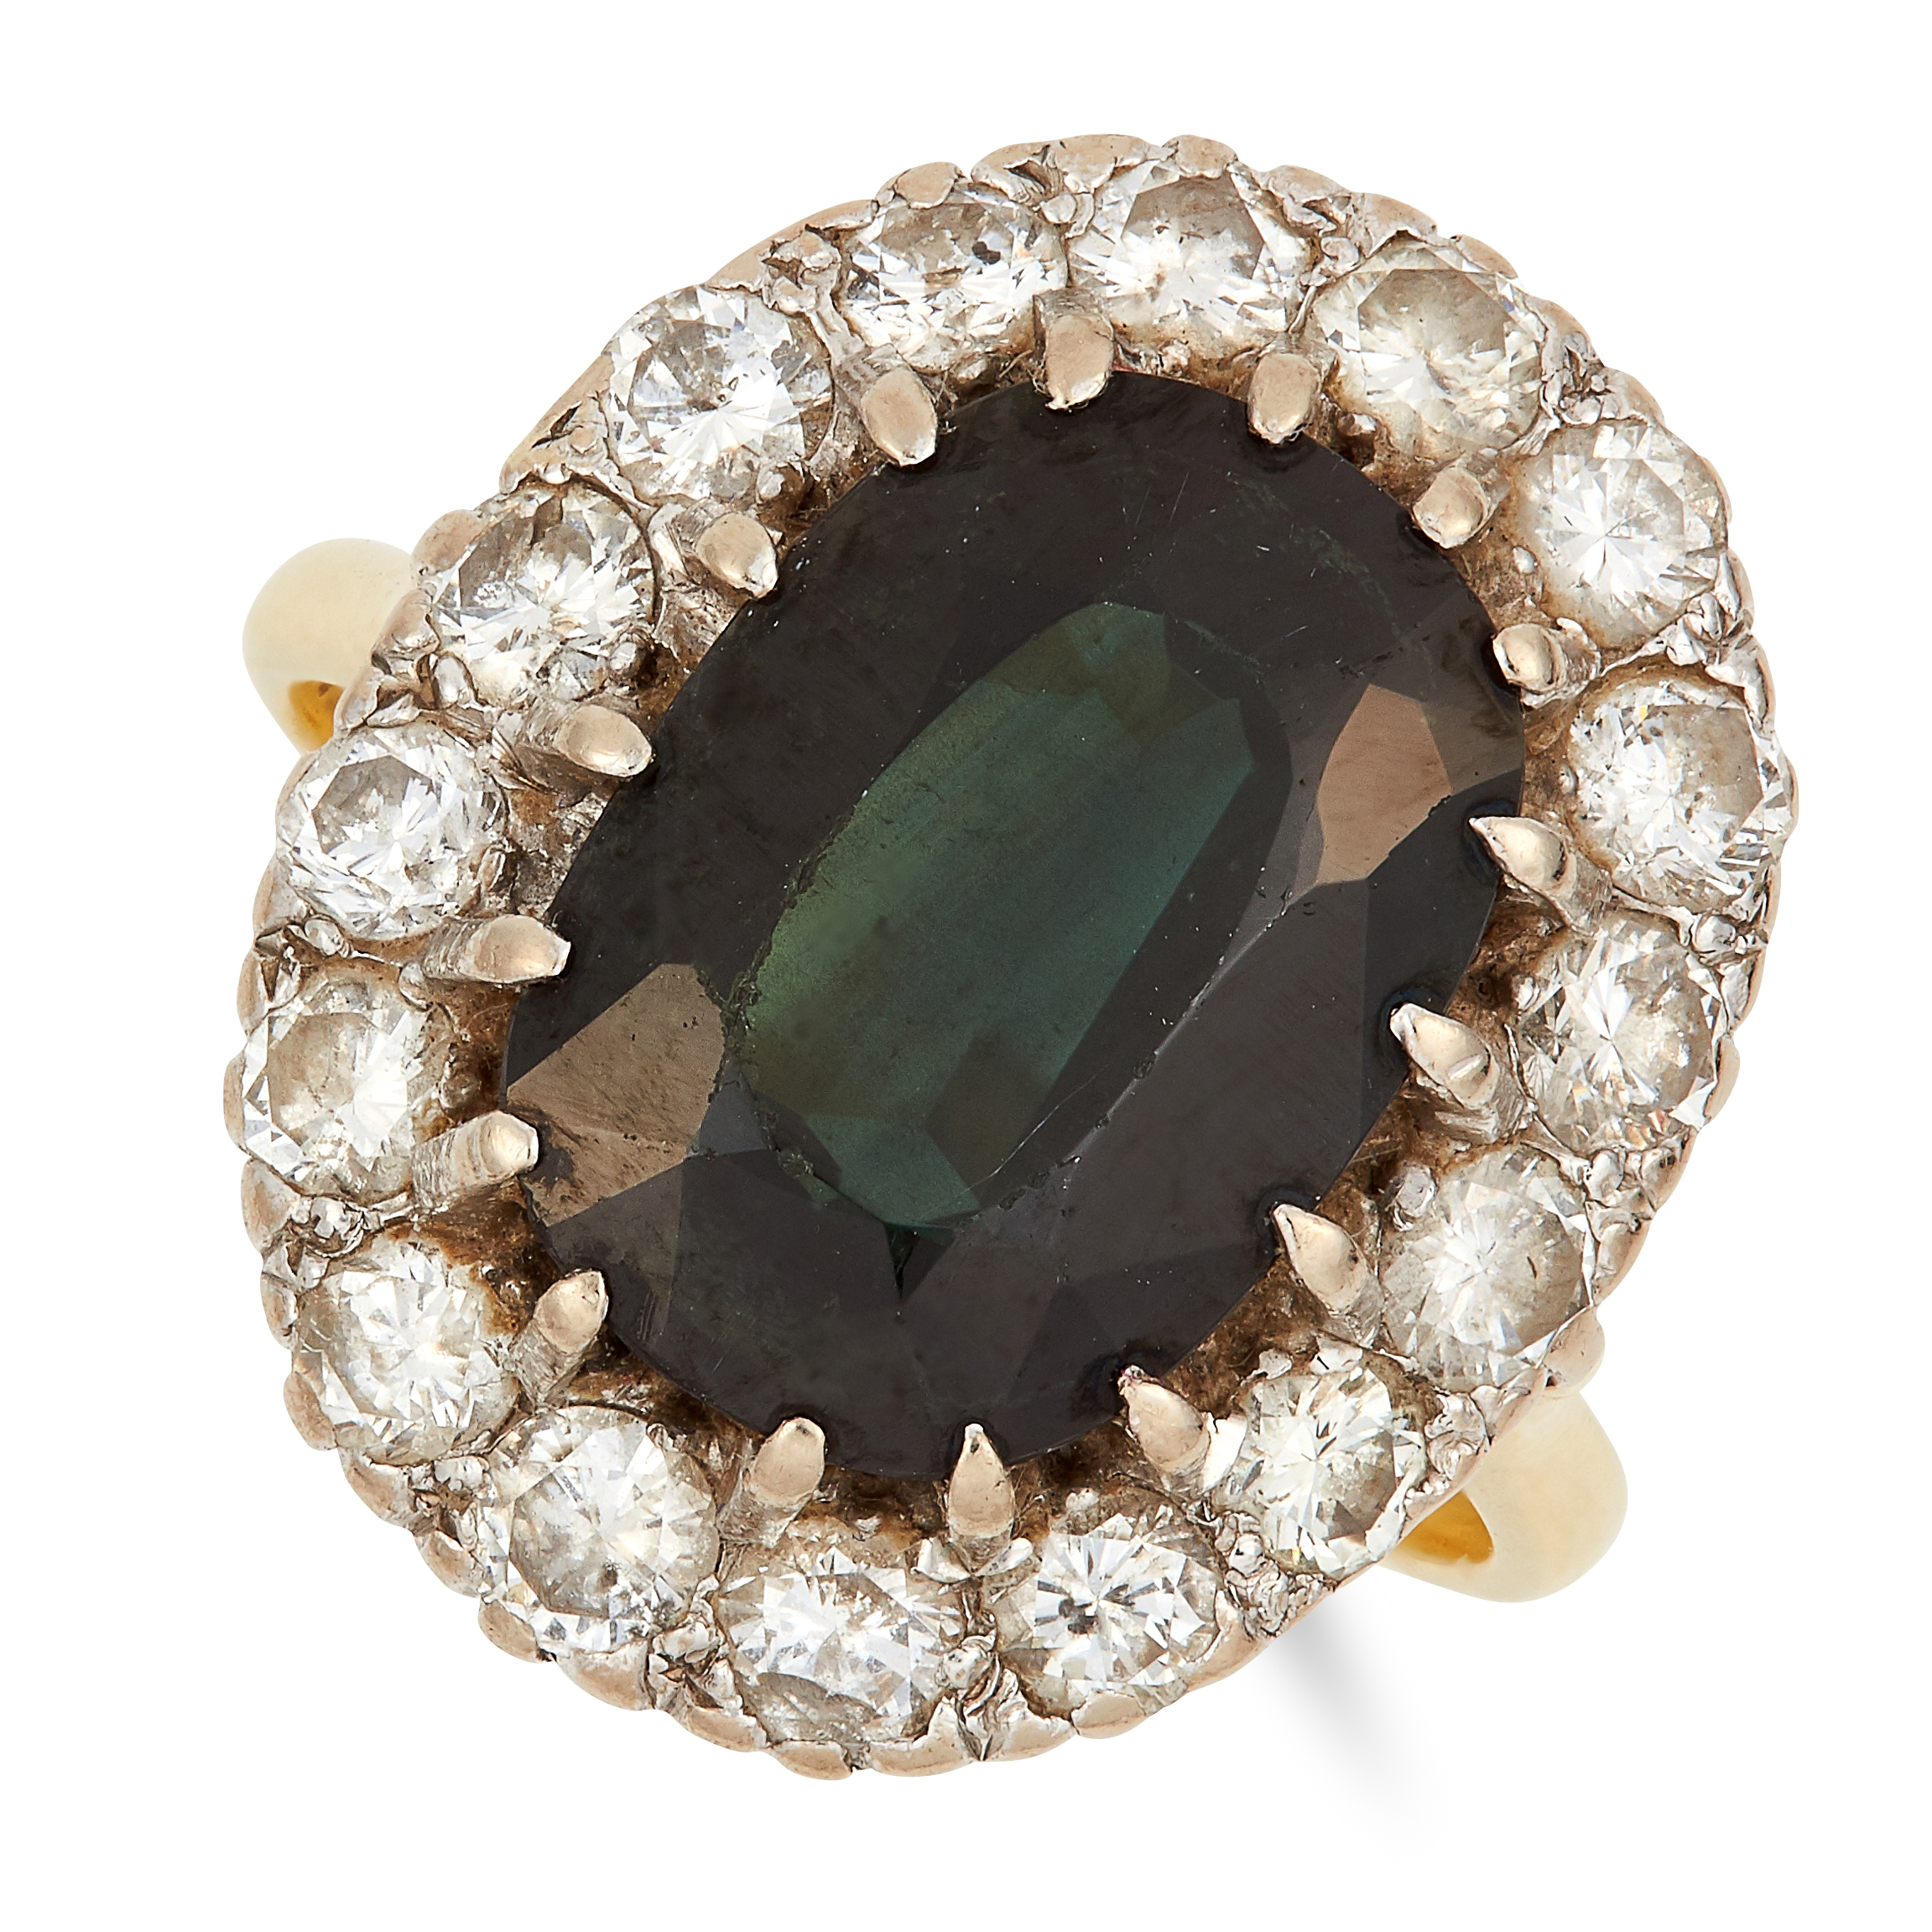 Los 34 - TOURMALINE AND DIAMOND CLUSTER RING set with an oval cut green tourmaline in a cluster of round